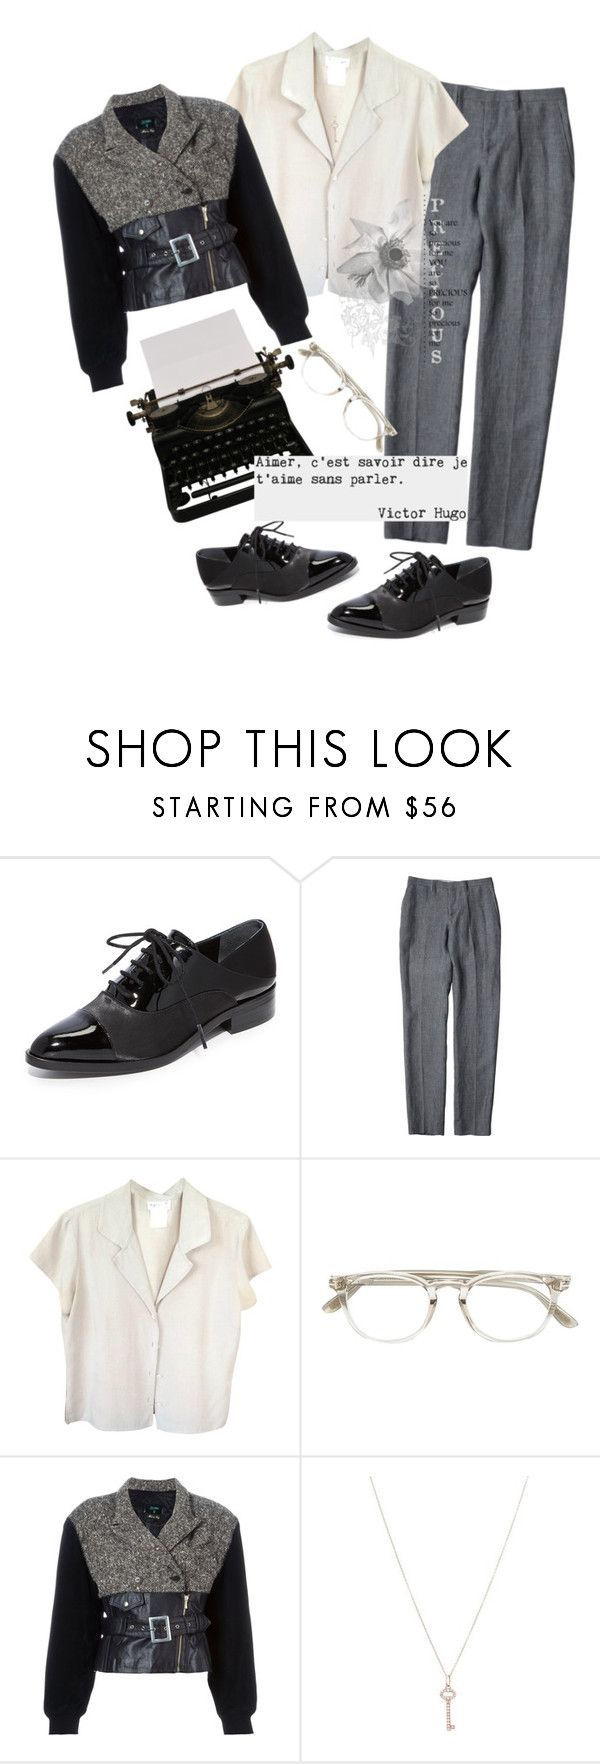 """""""Unspoken"""" by nicolesynth ❤ liked on Polyvore featuring Sigerson Morrison, agnès b., Tom Ford, Jean-Paul Gaultier and Tiffany & Co."""